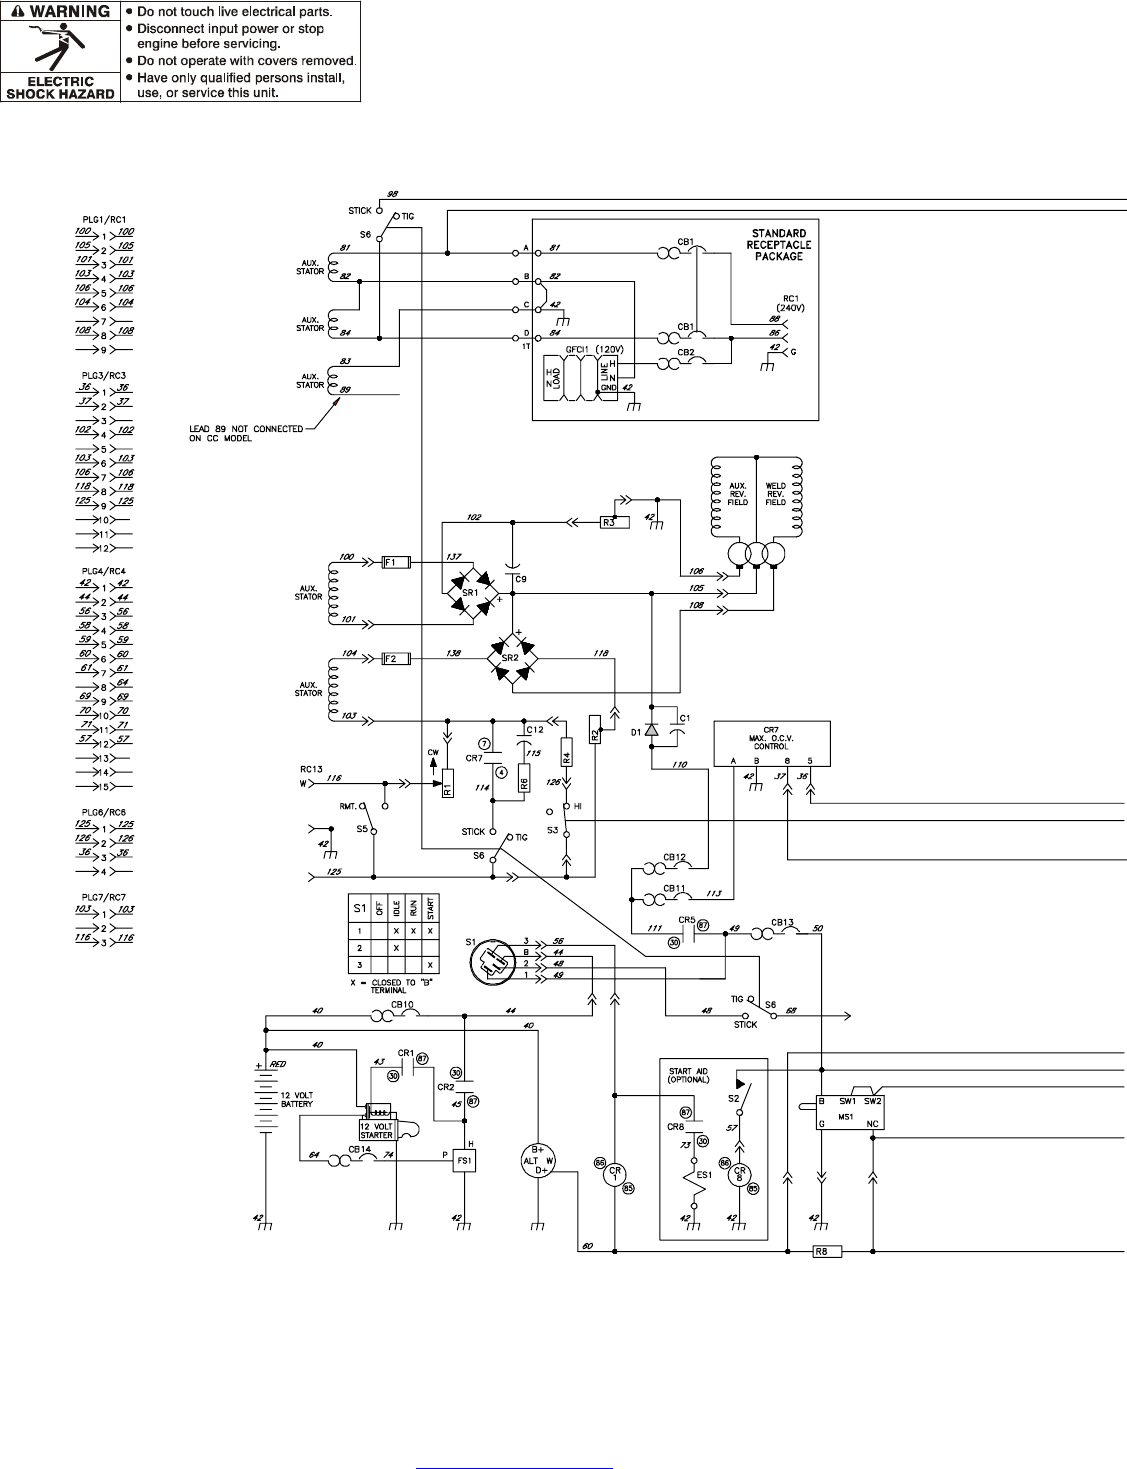 Page 82 of miller electric welding system big blue 602dr user guide miller big 40 wiring diagram 3 miller big 40 wiring diagram